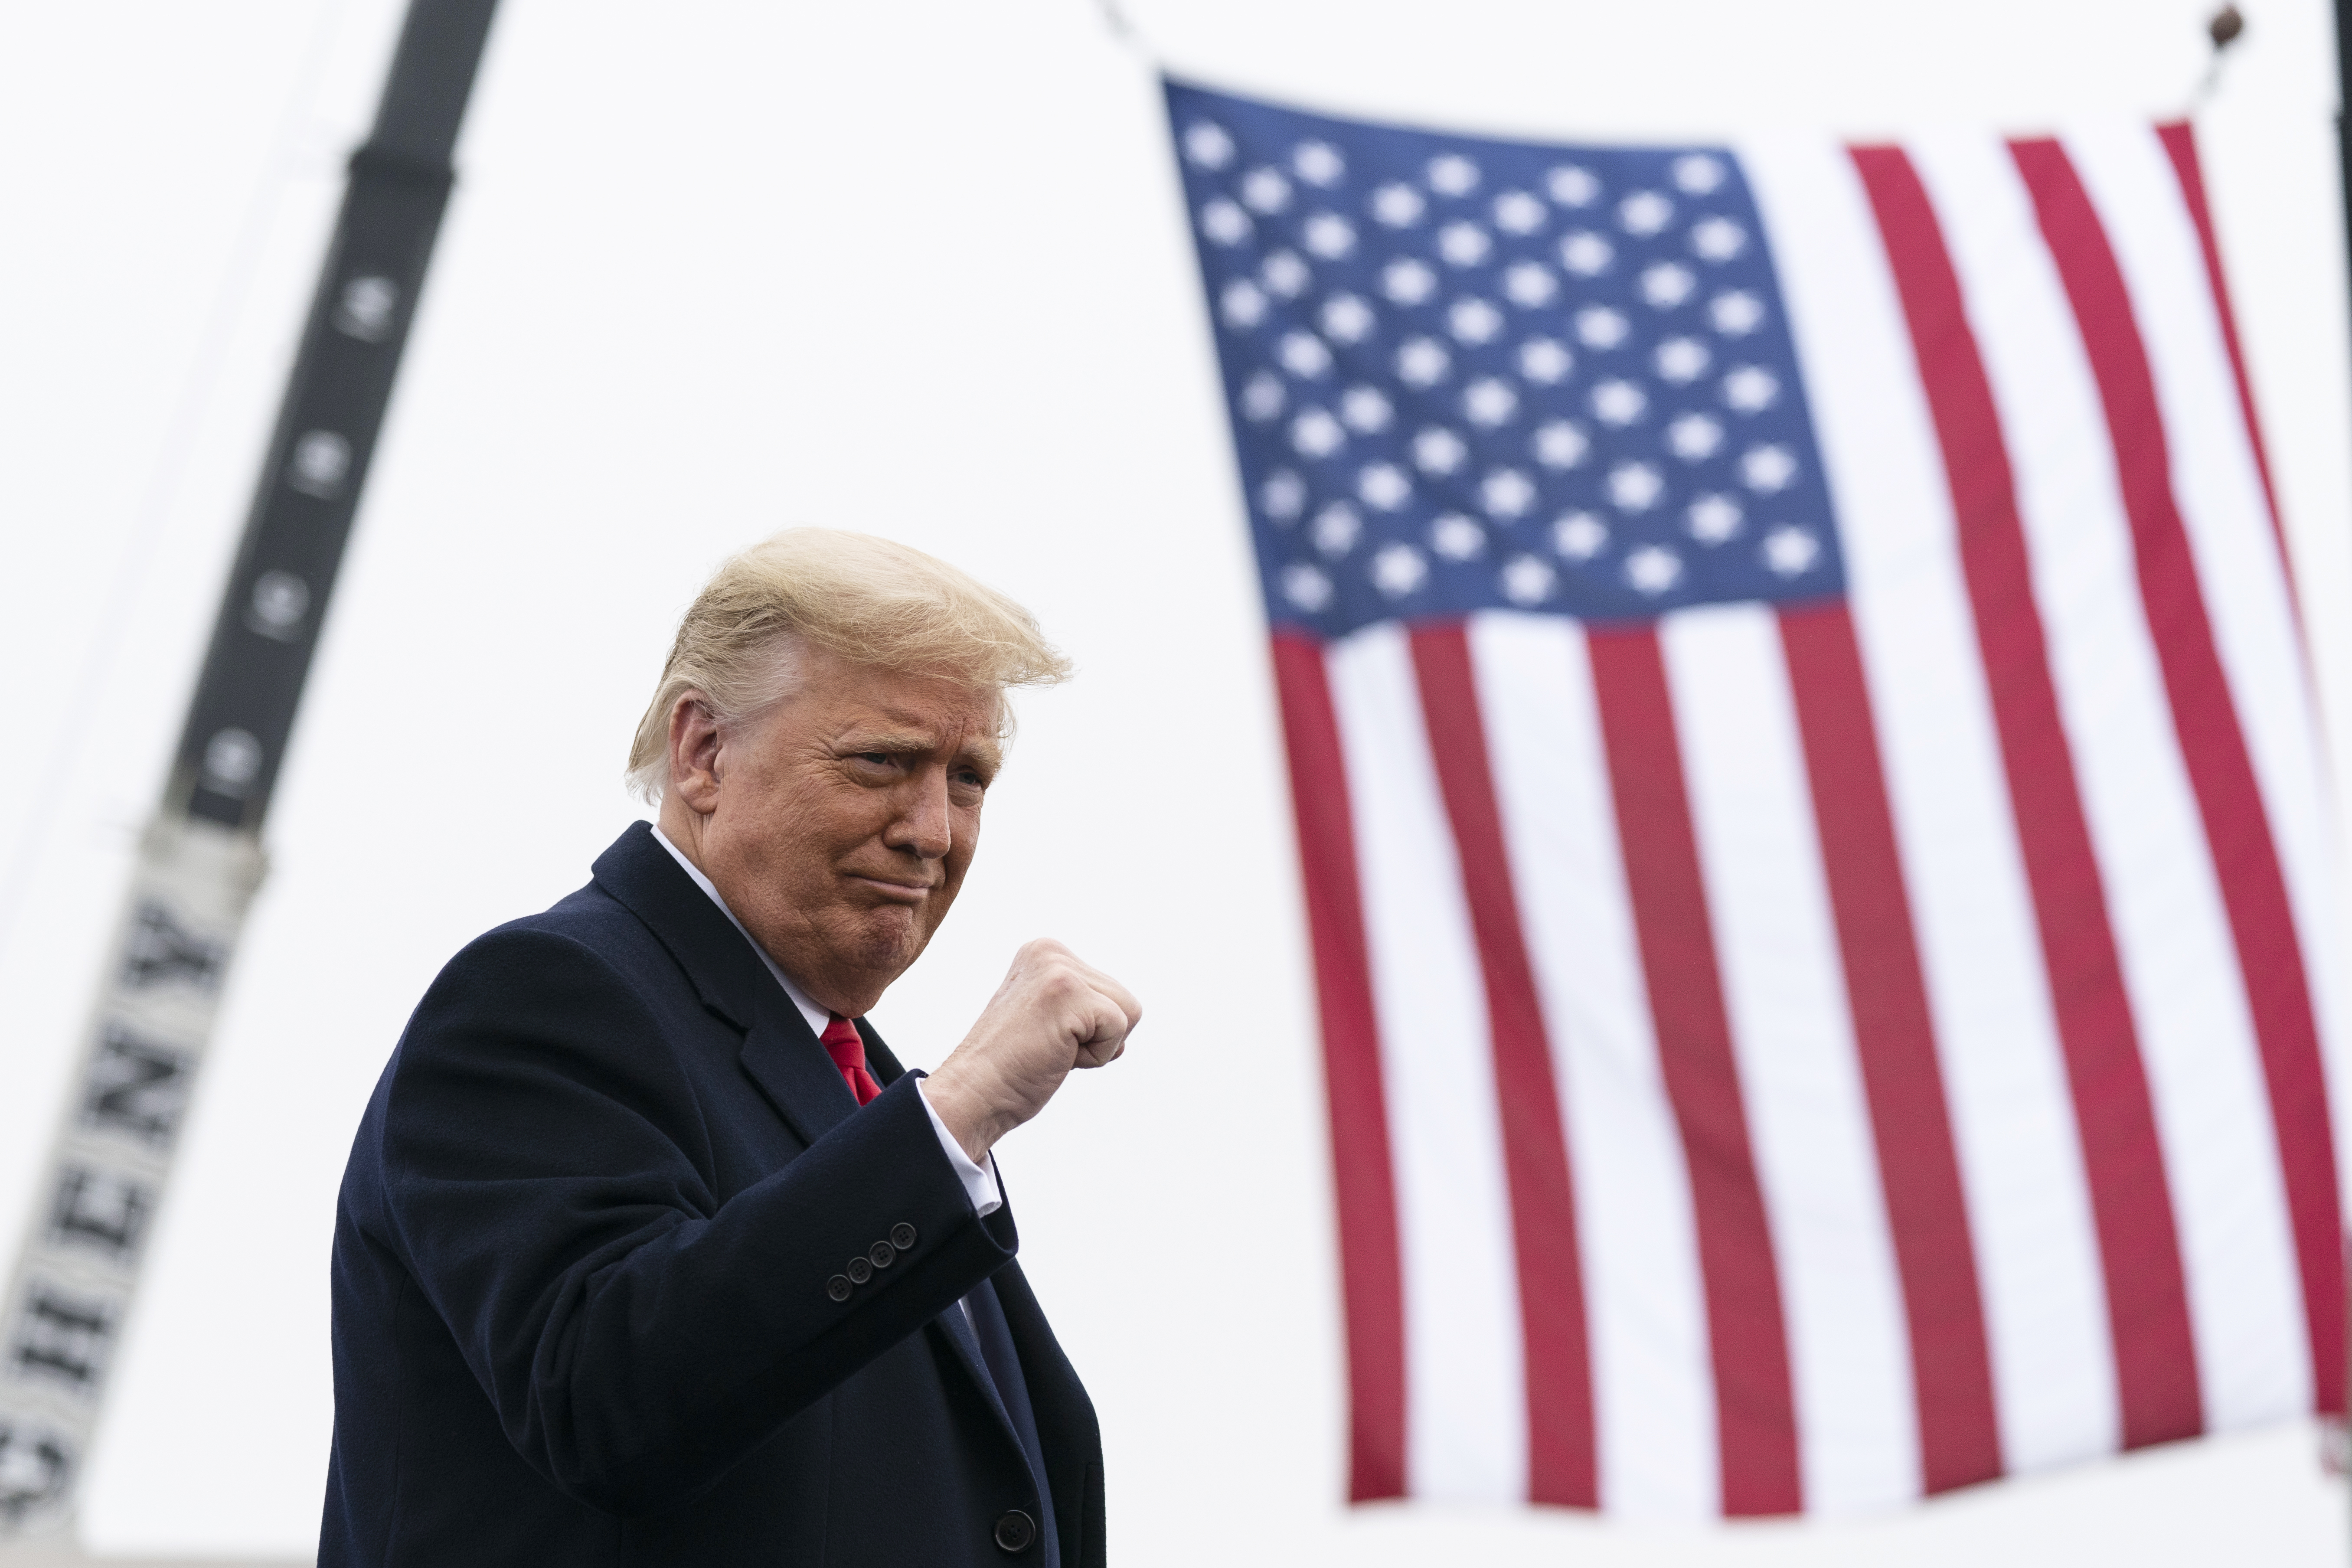 Donald Trump next to American flag (PA Images)